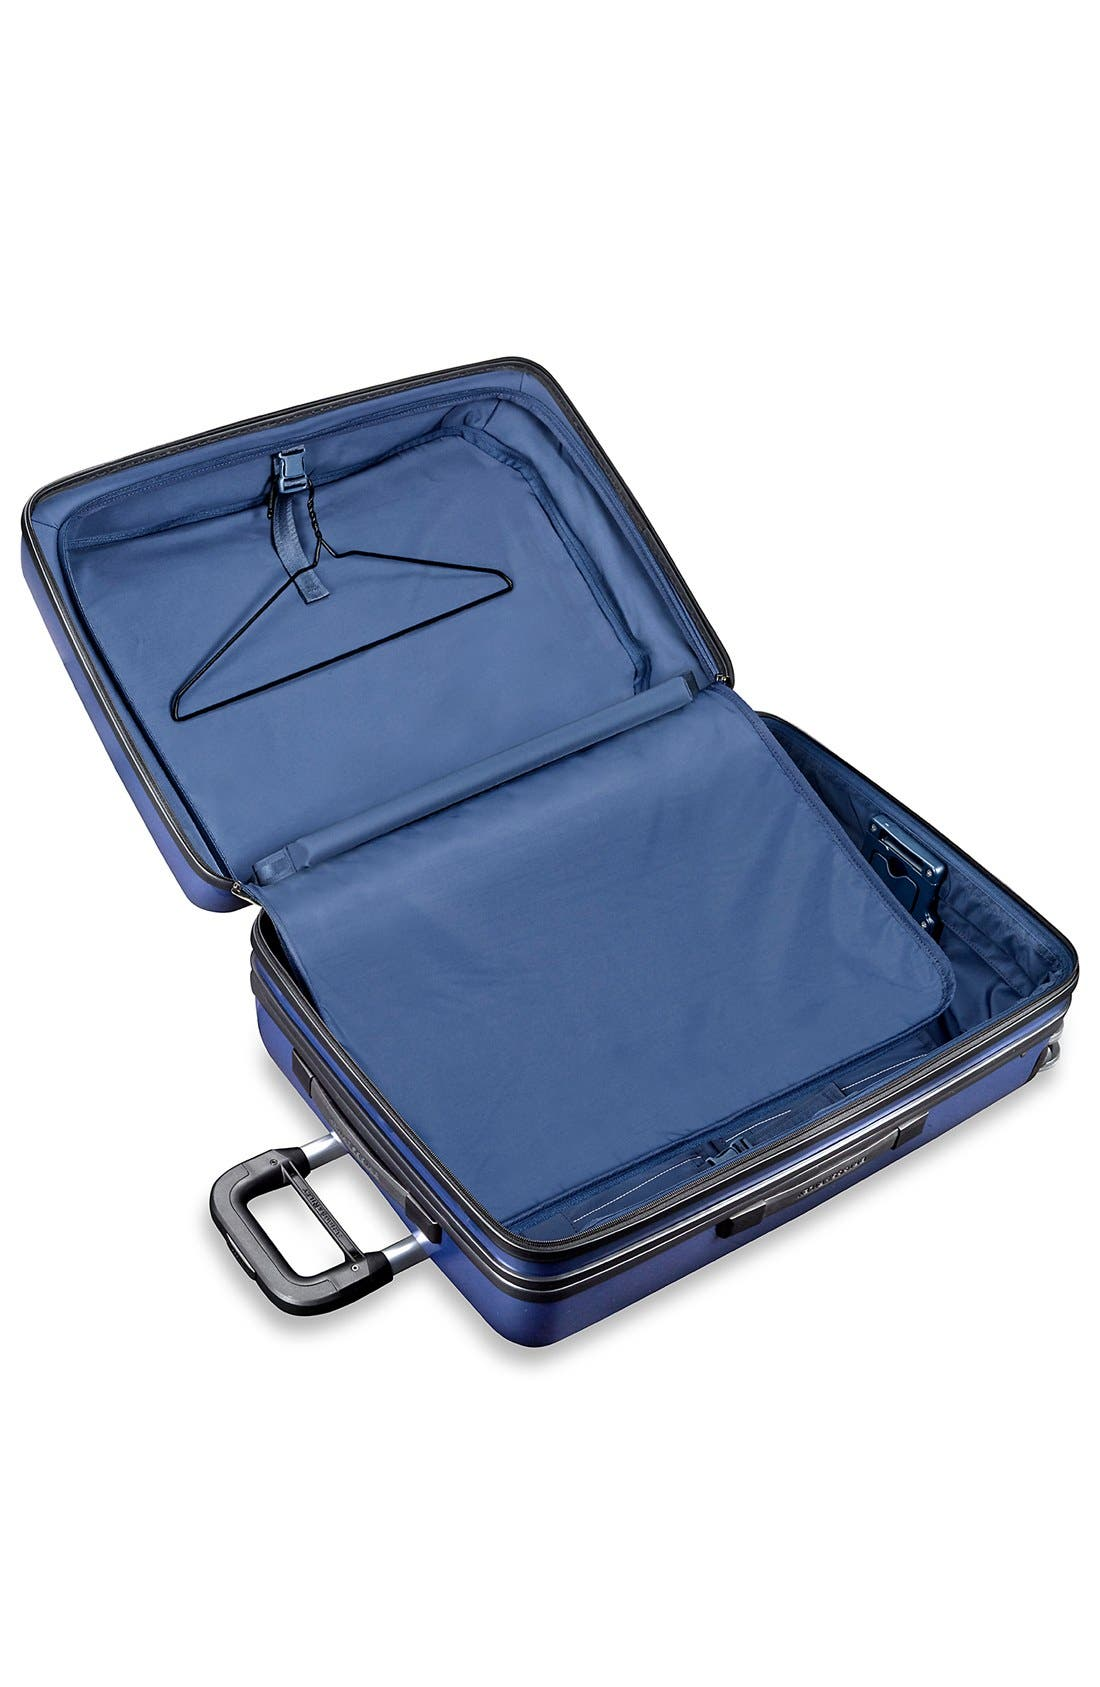 'Sympatico' Expandable Wheeled Packing Case,                             Alternate thumbnail 3, color,                             Marine Blue